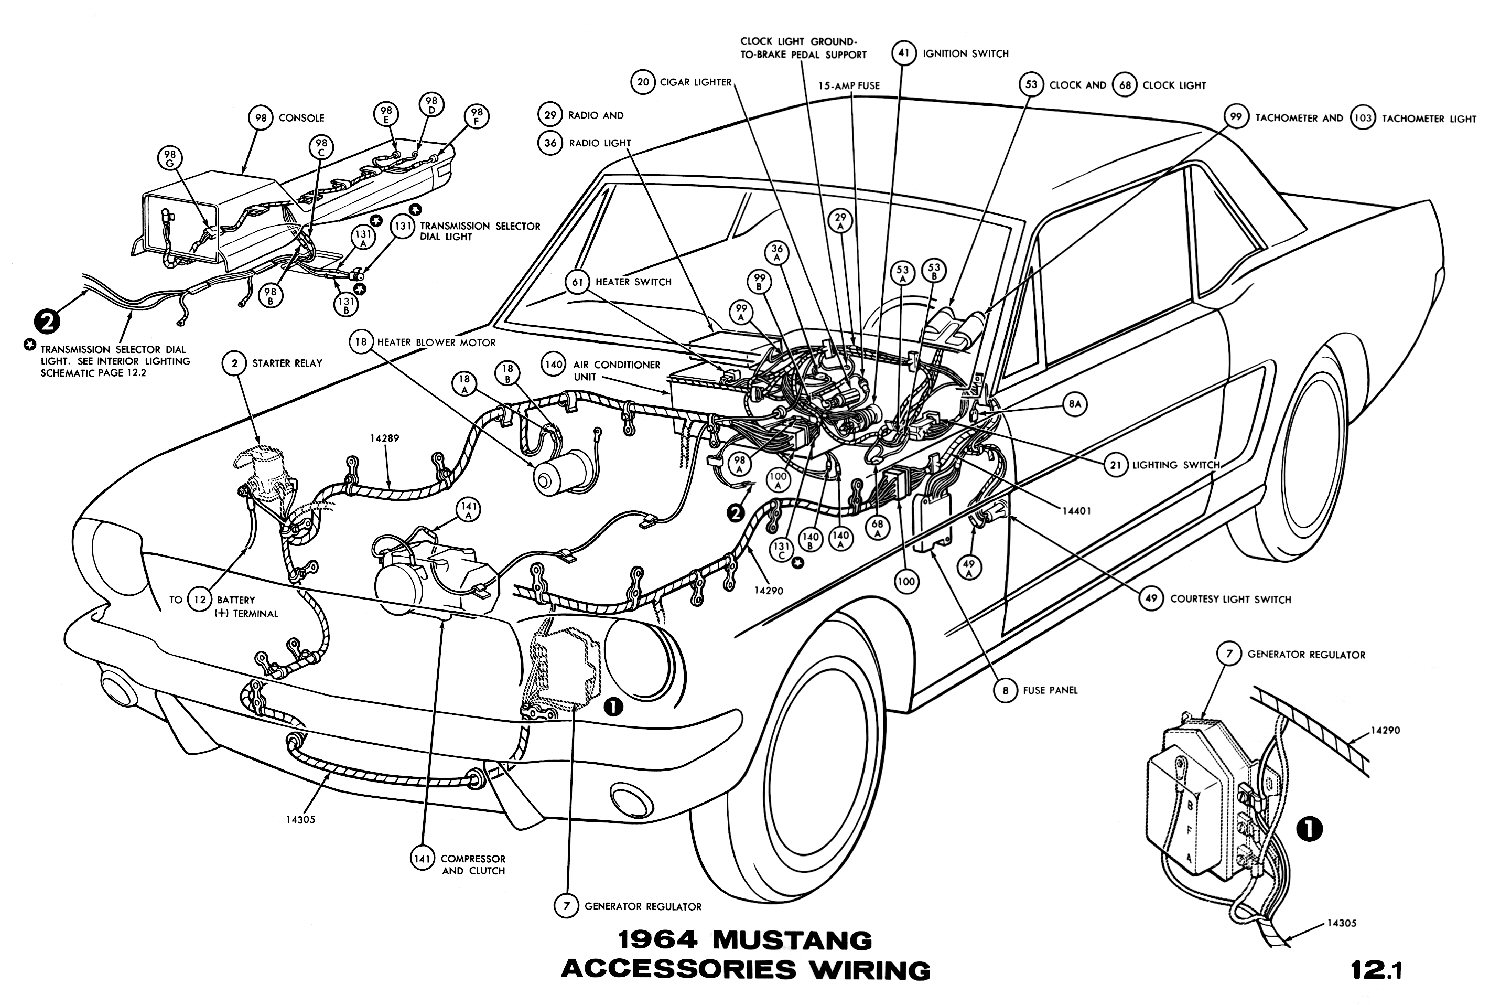 hight resolution of 1964 mustang accessories pictorial or schematic